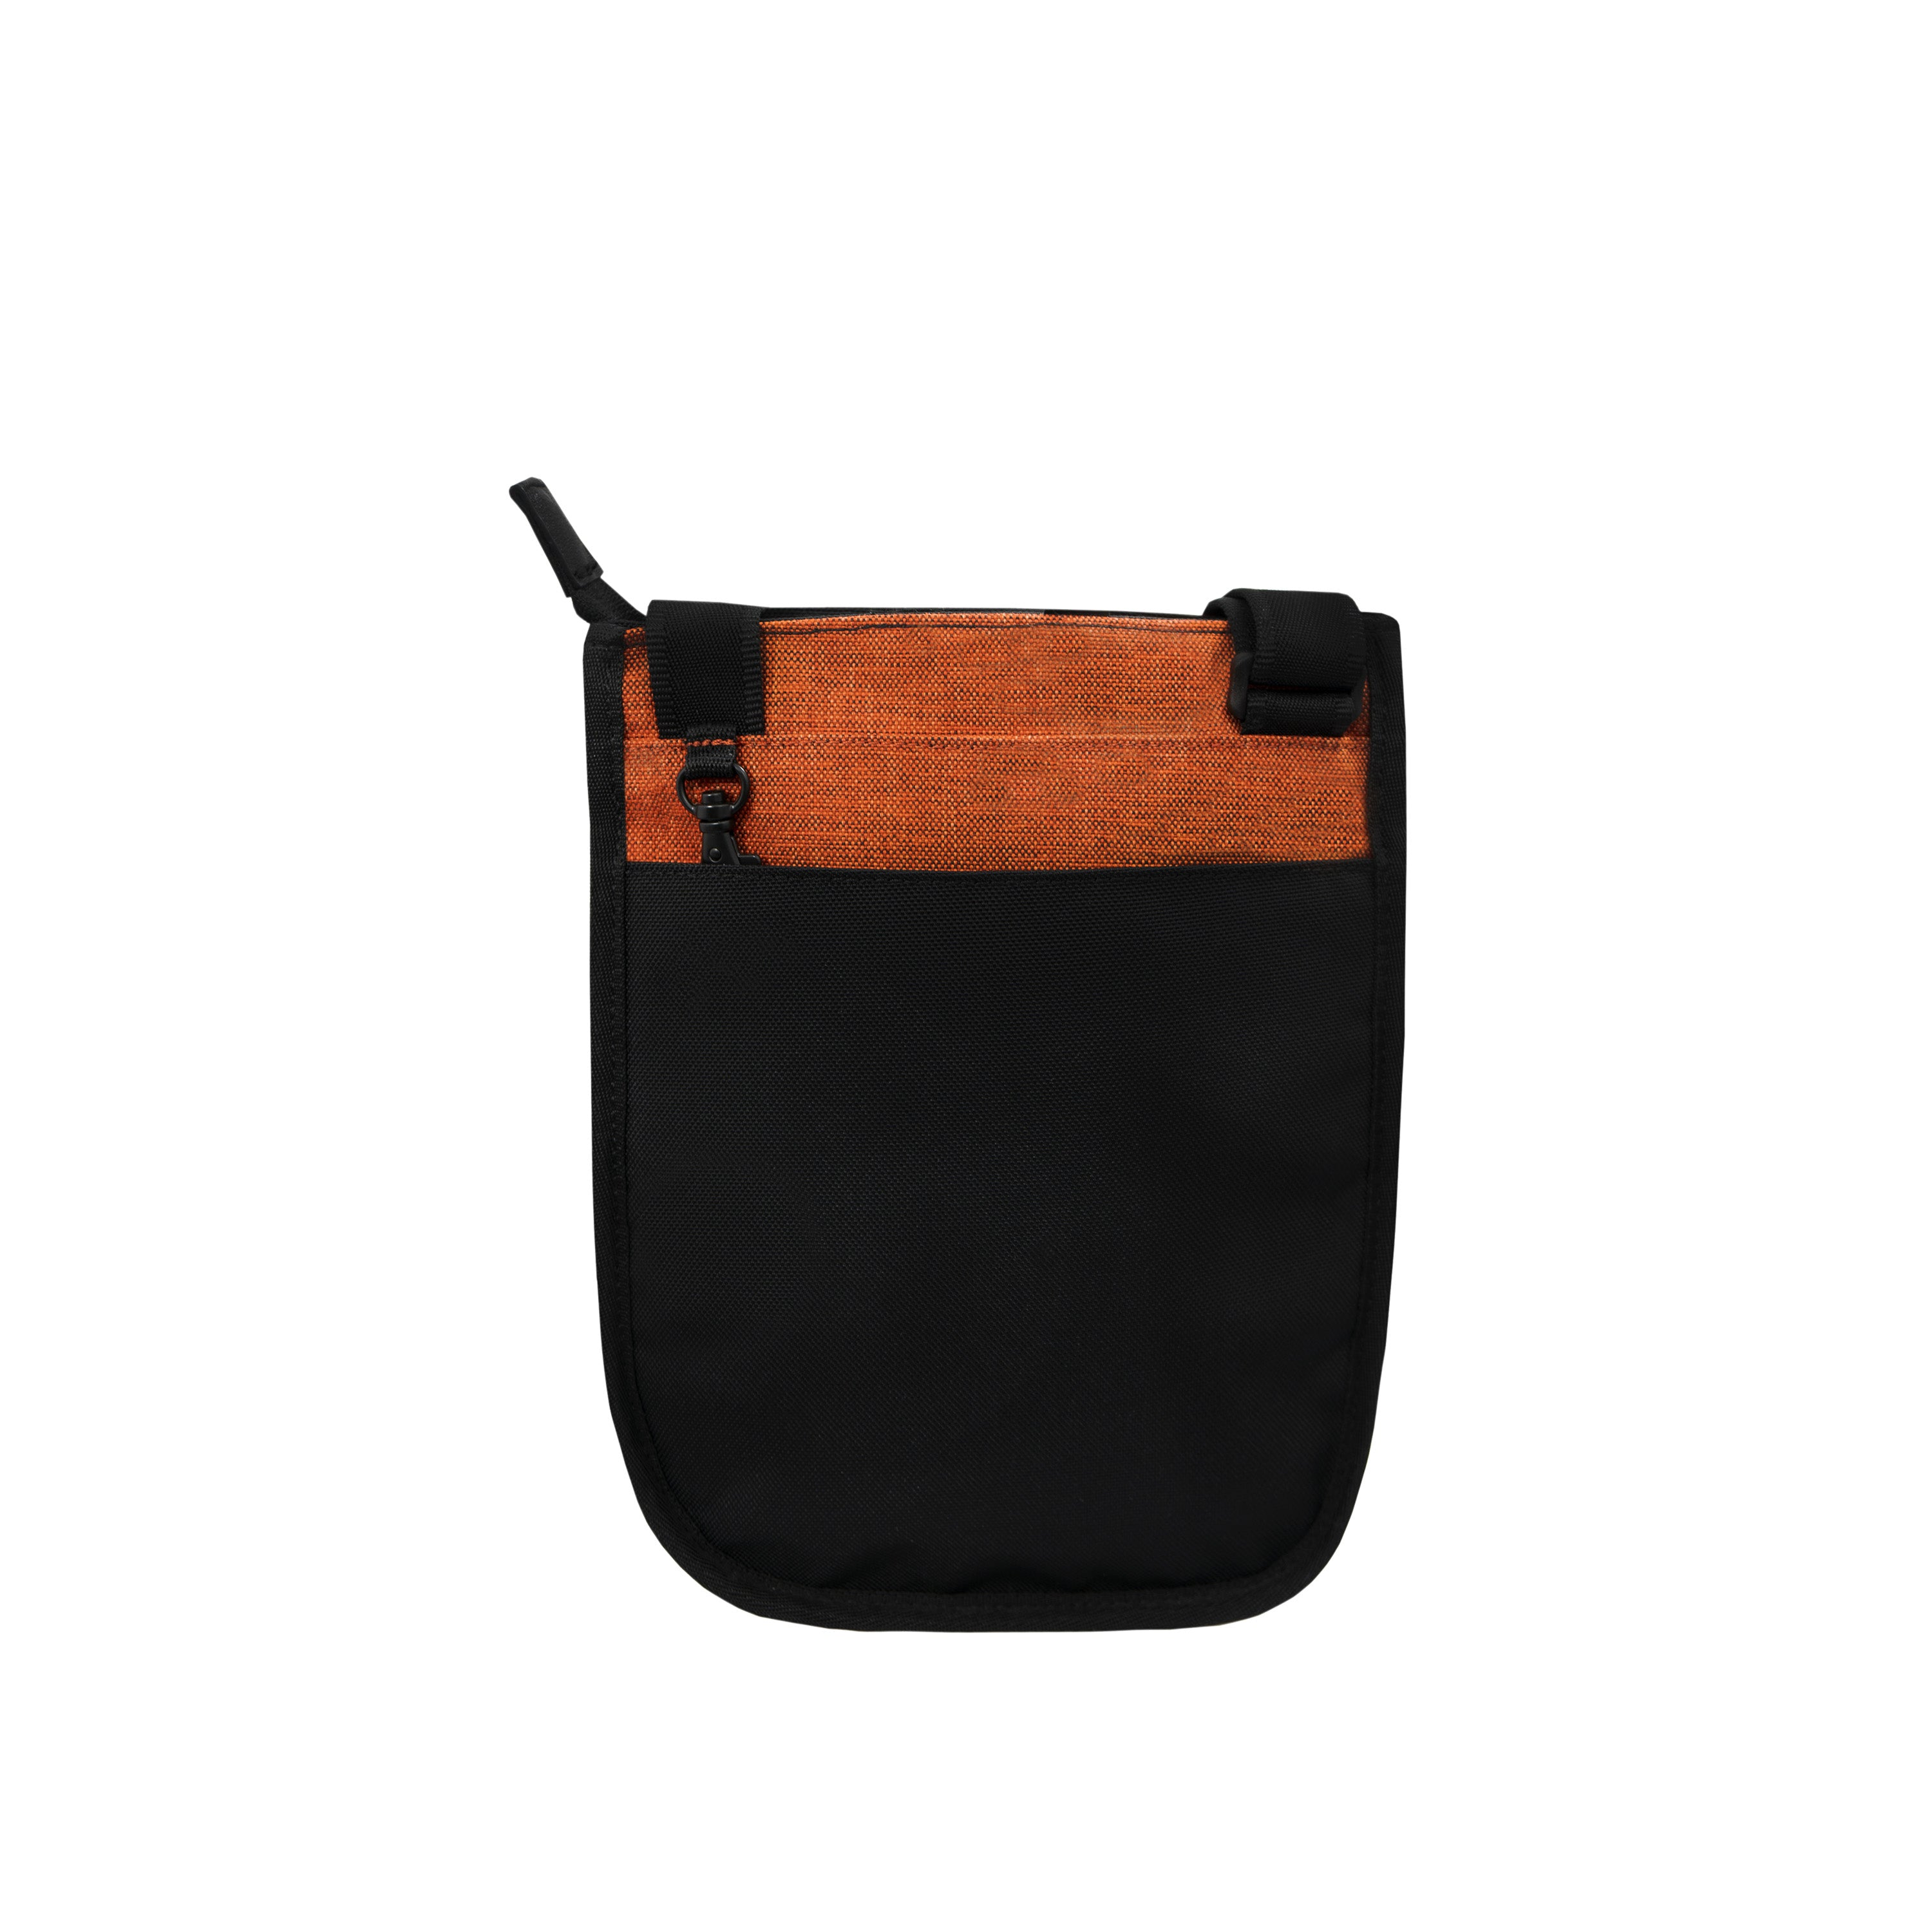 Orange Anti-theft Crossbody (back view) with anti-theft features